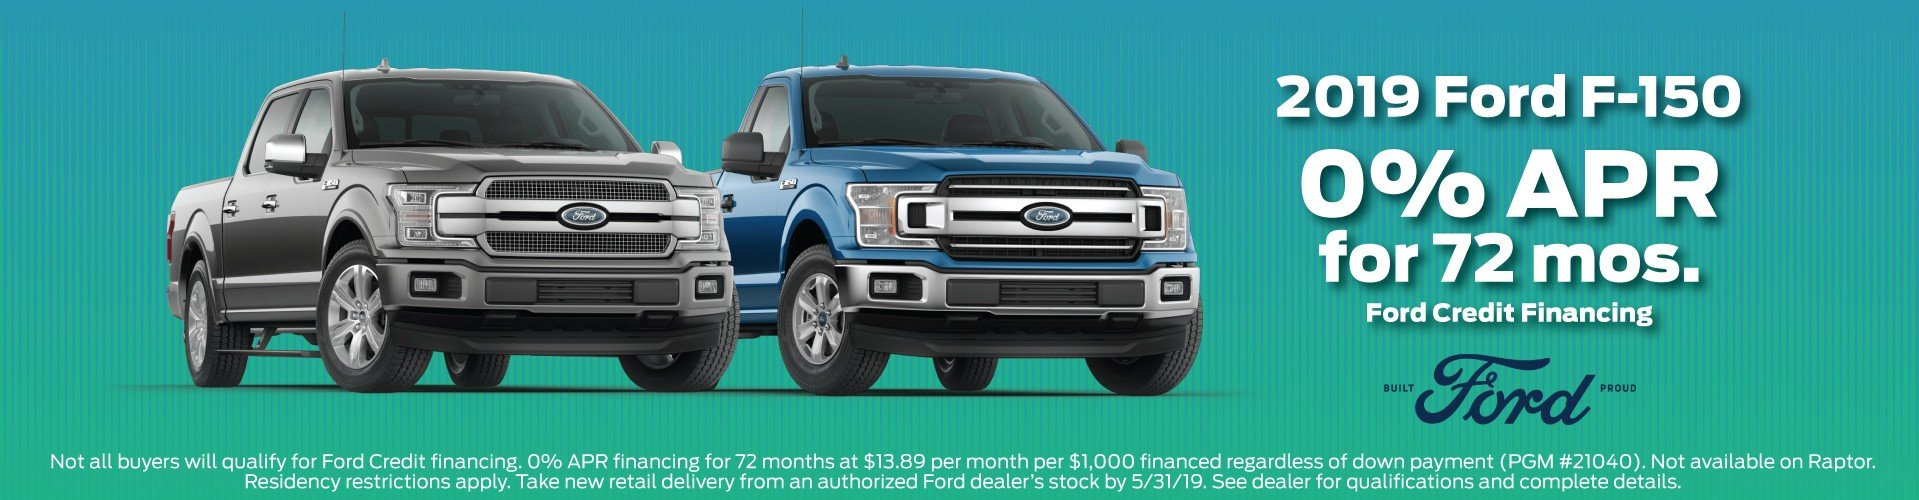 2019 Ford F150 Offer 5-2019